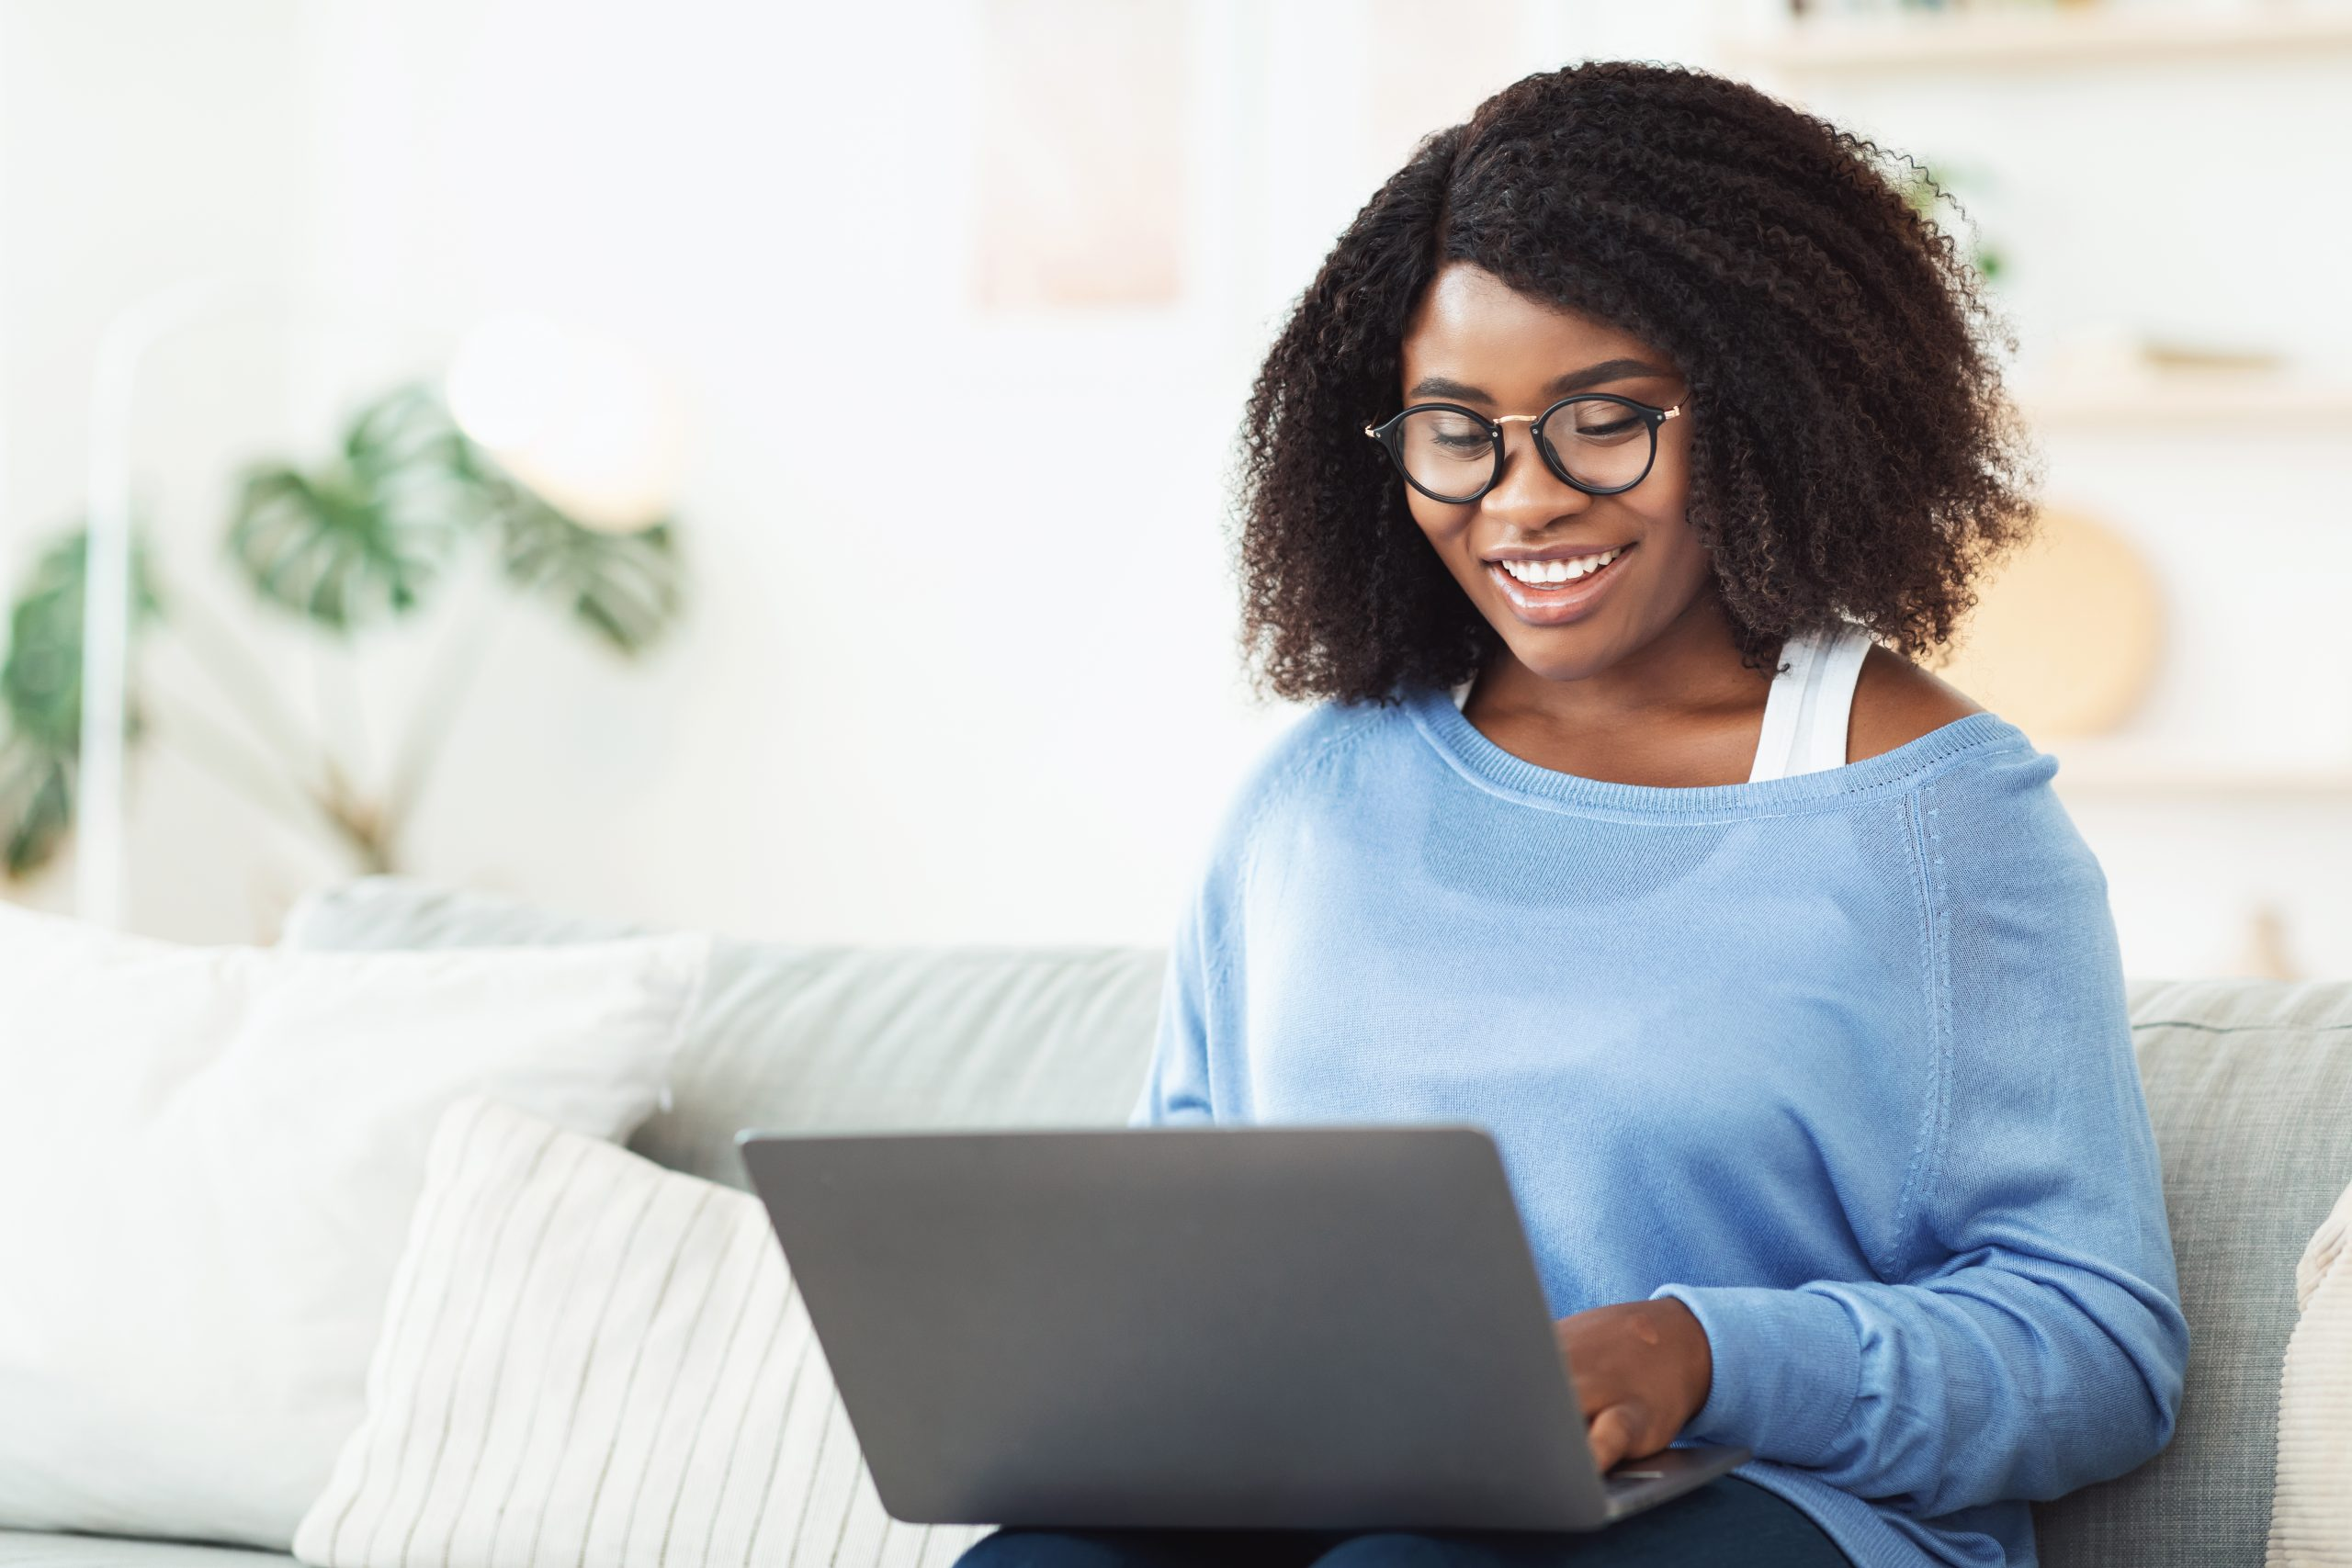 Enjoying The Day. Smiling black girl in eyewear typing on her laptop keyboard, sitting on couch, free space